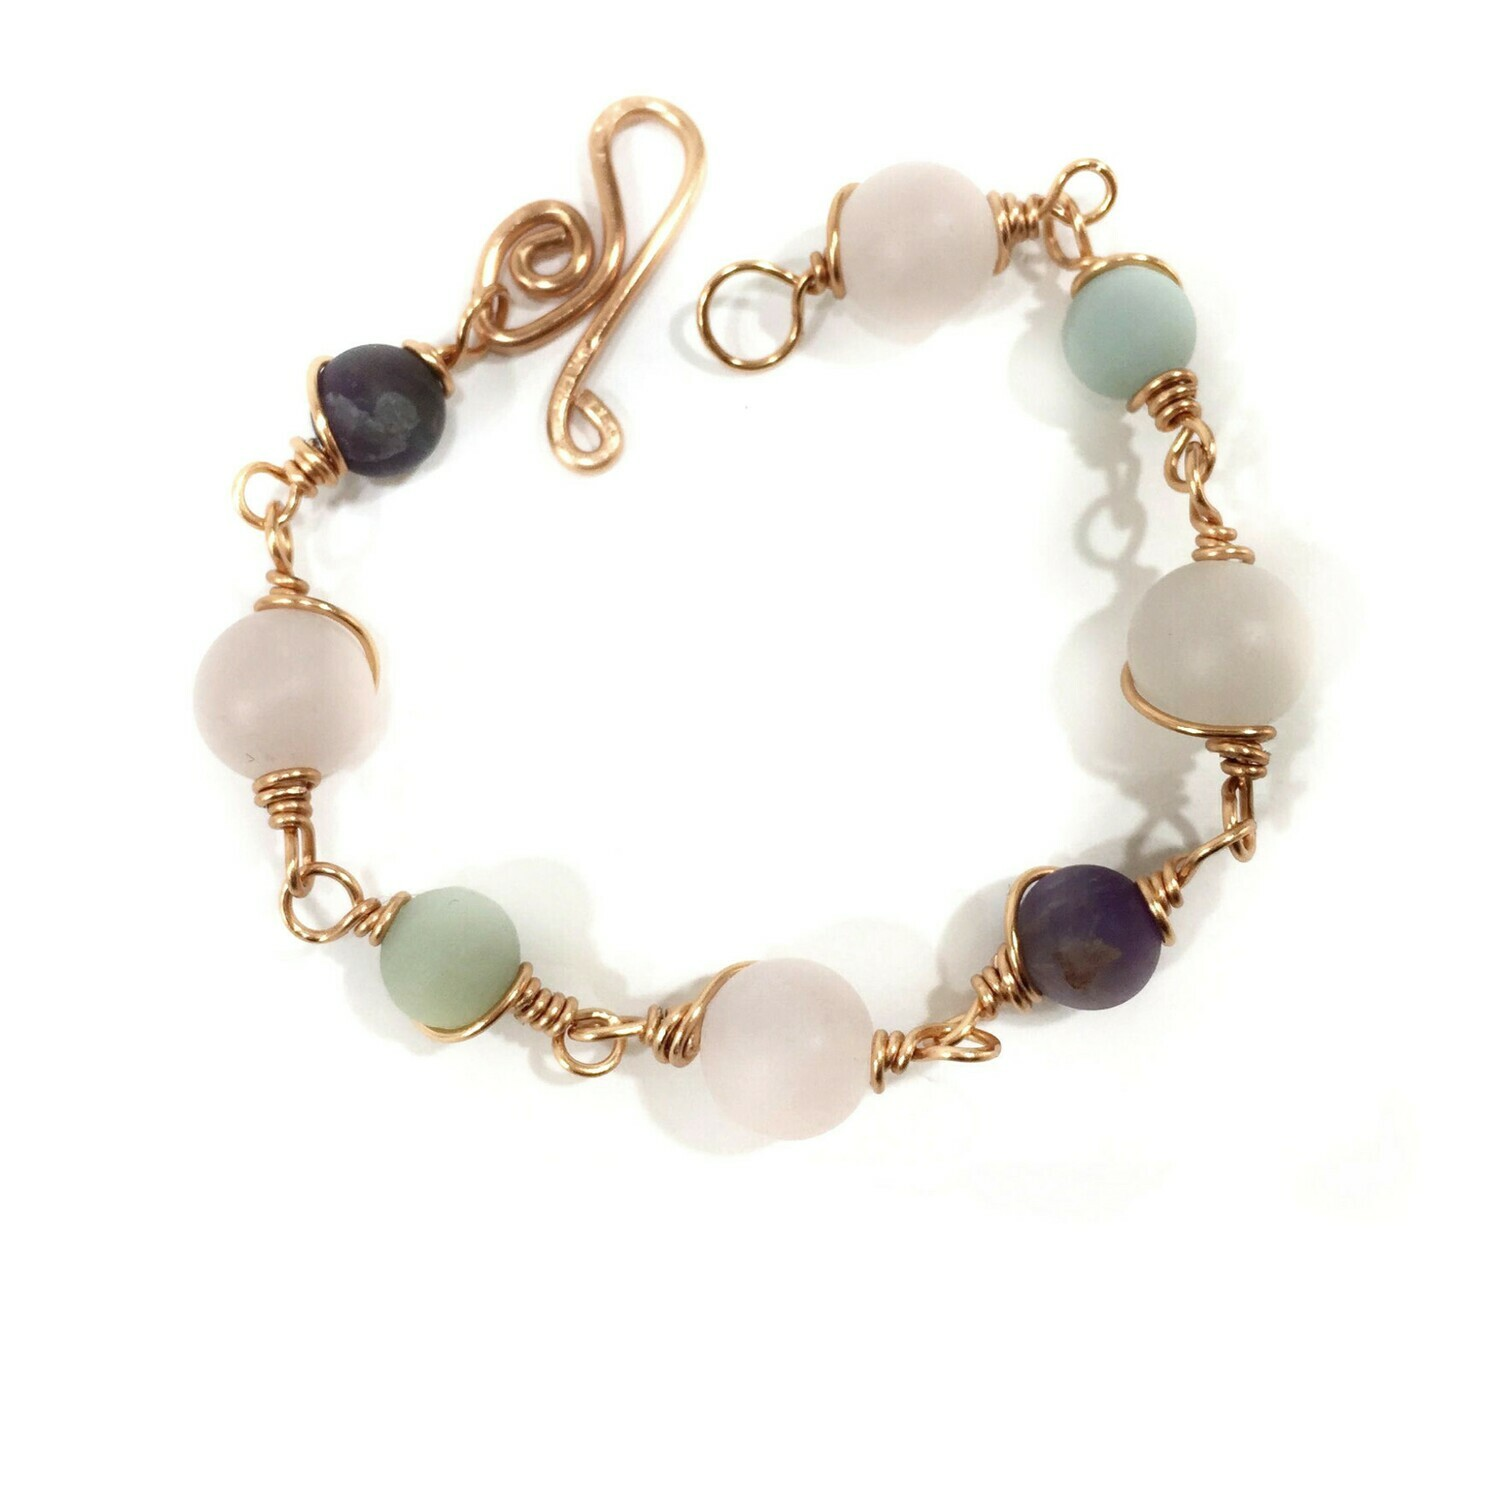 Copper bracelet with Rose Quartz, Amazonite and Amethyst frosted beads